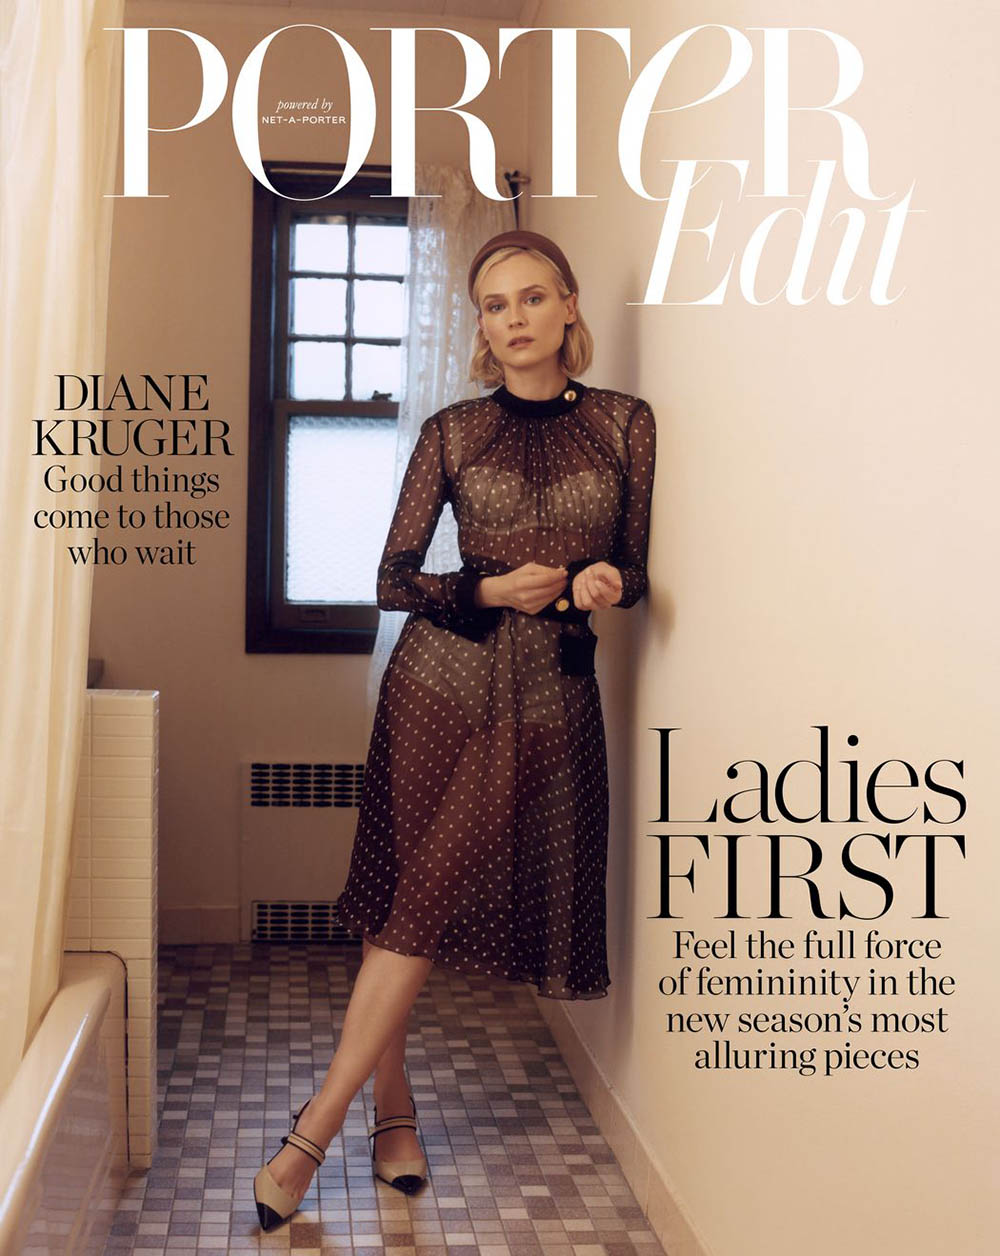 Diane Kruger covers Porter Edit January 25th, 2019 by Benjamin Vnuk